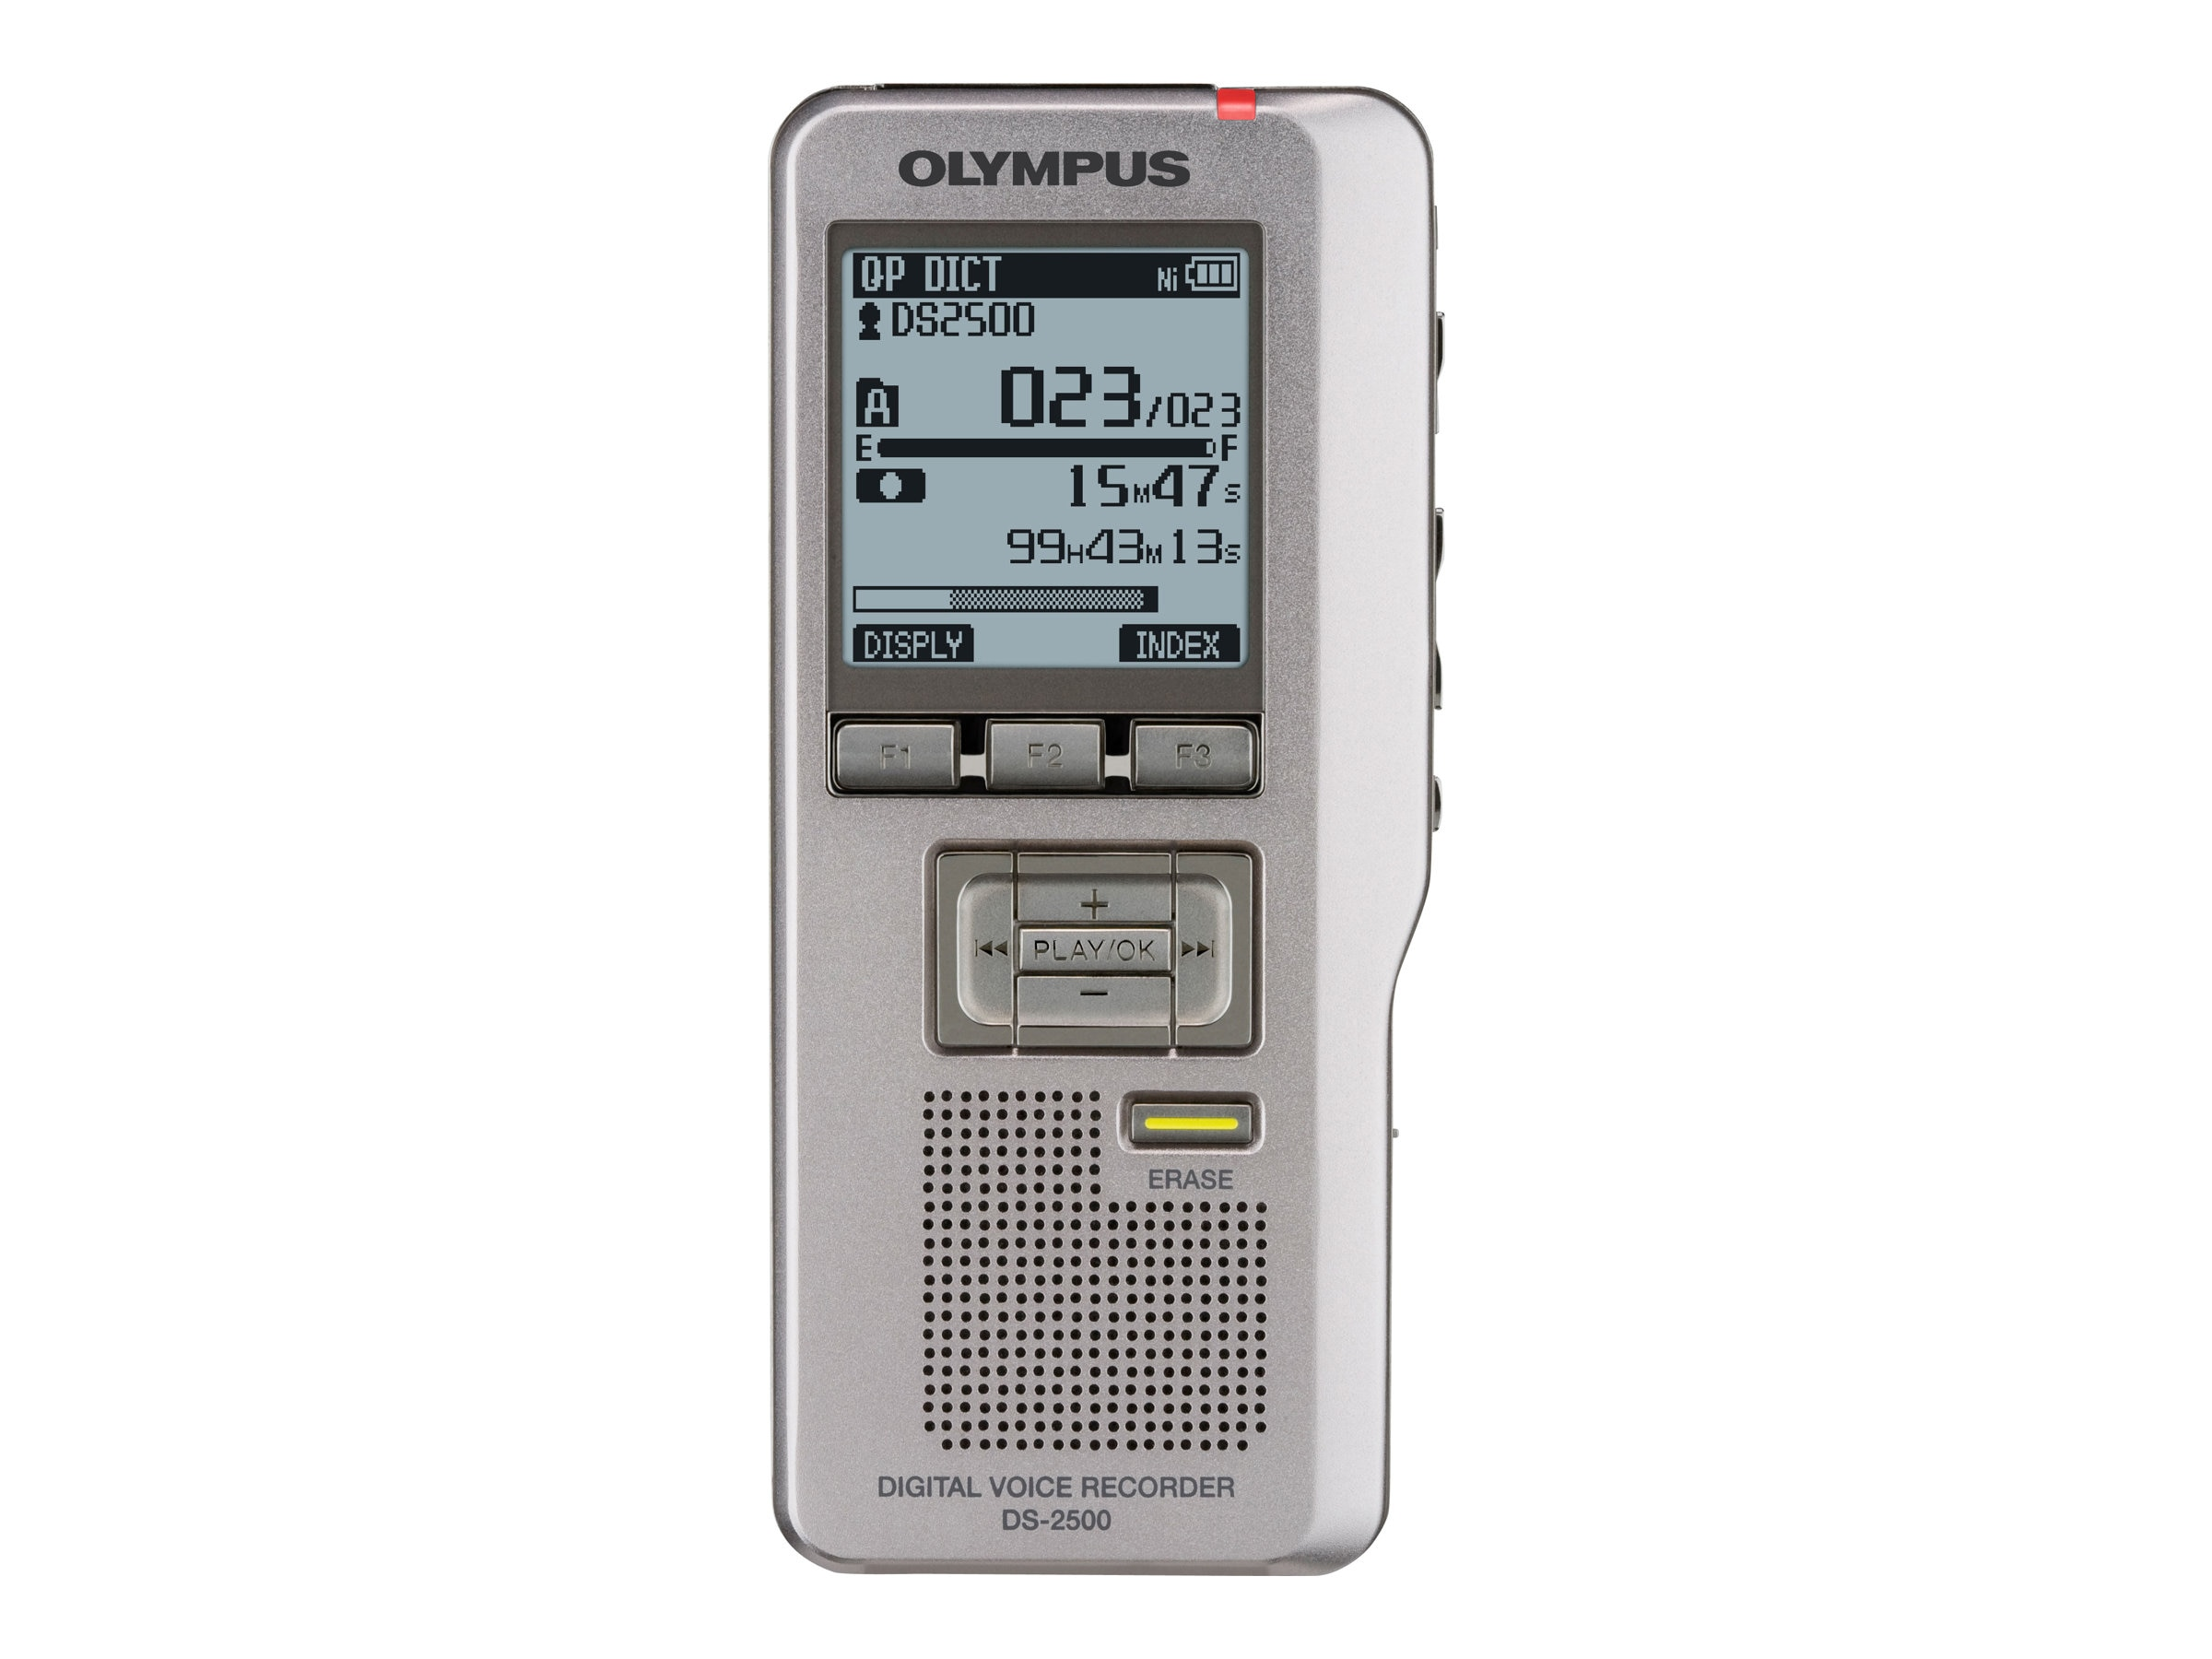 Olympus DS-2500 Digital Voice Recorder, Silver, V403121SU000